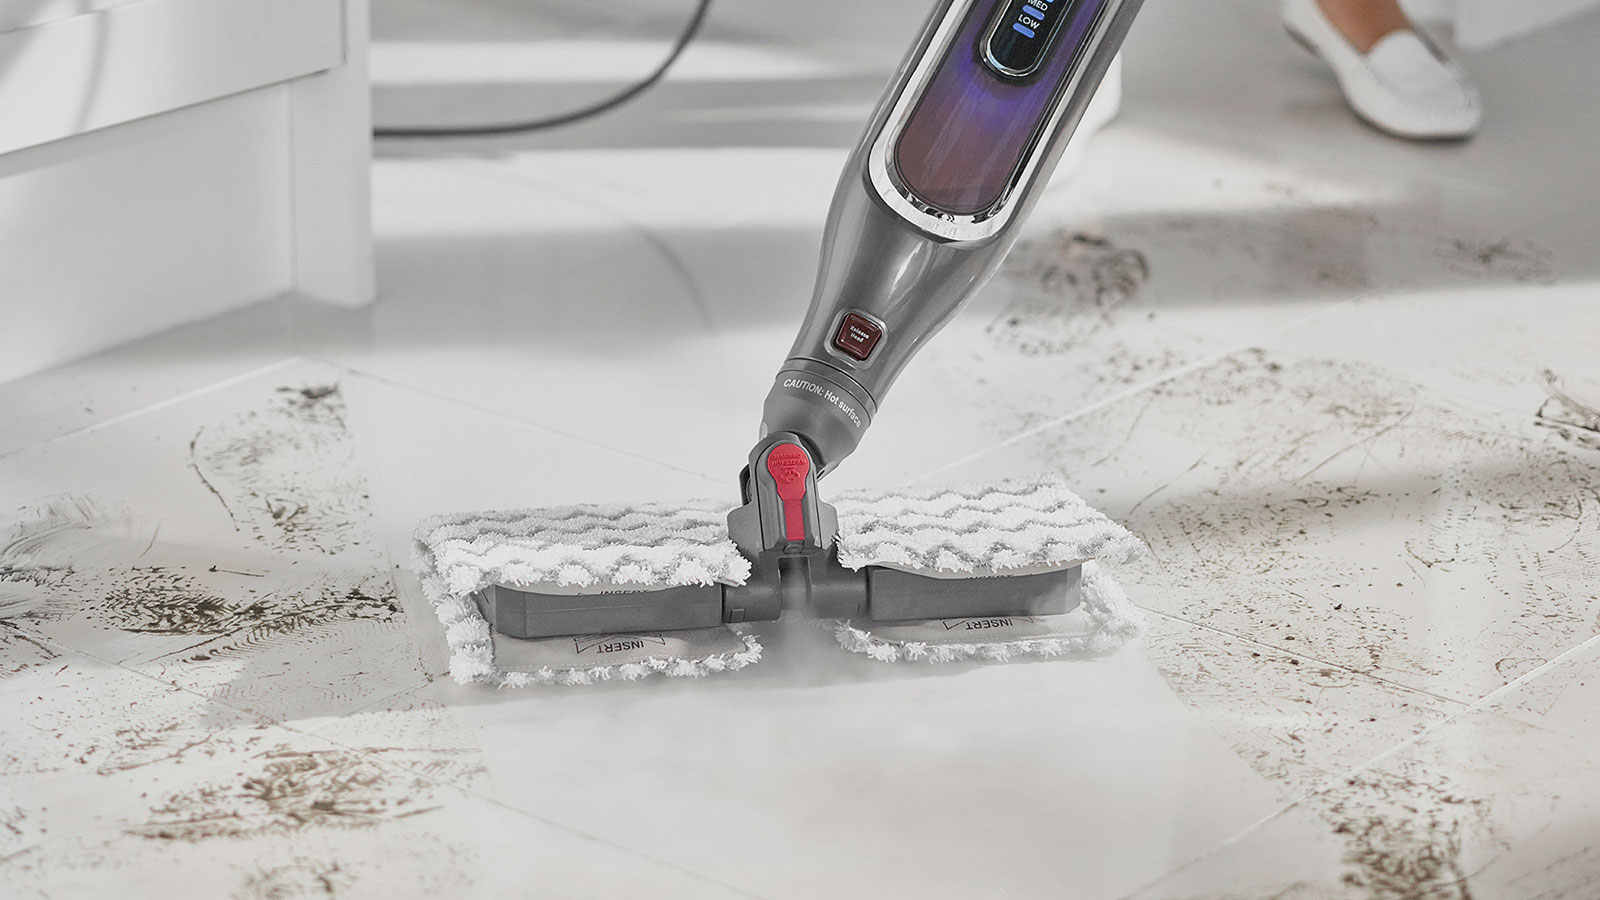 Shark Klik n' Flip Steam Mop with Steam Blaster Mode